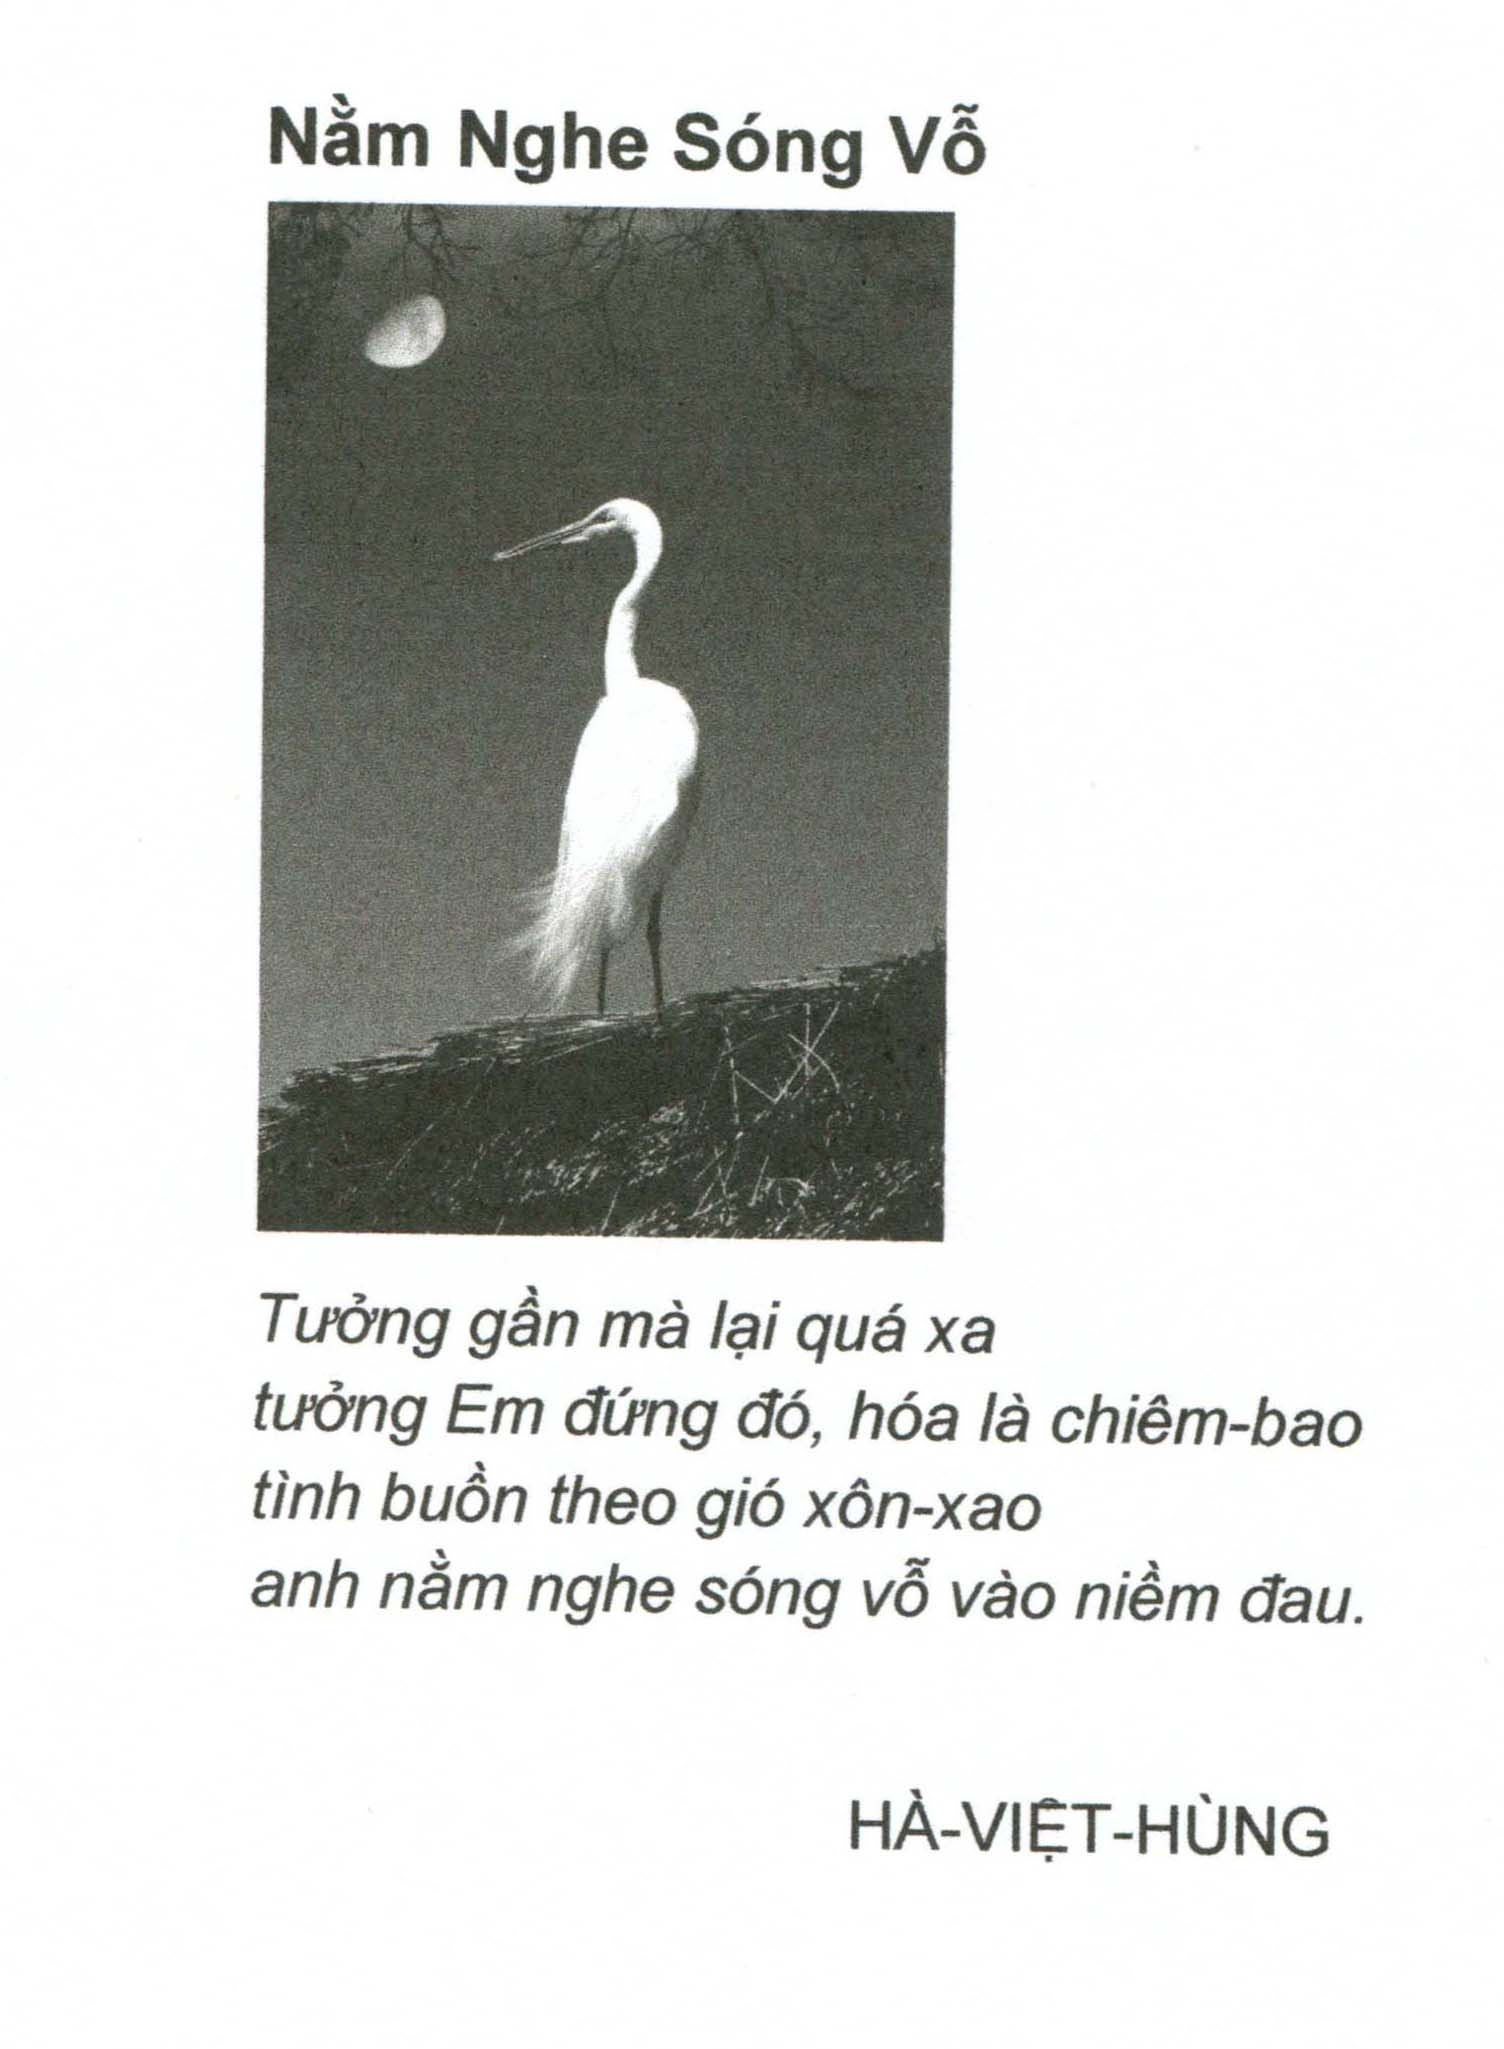 nam nghe song vo